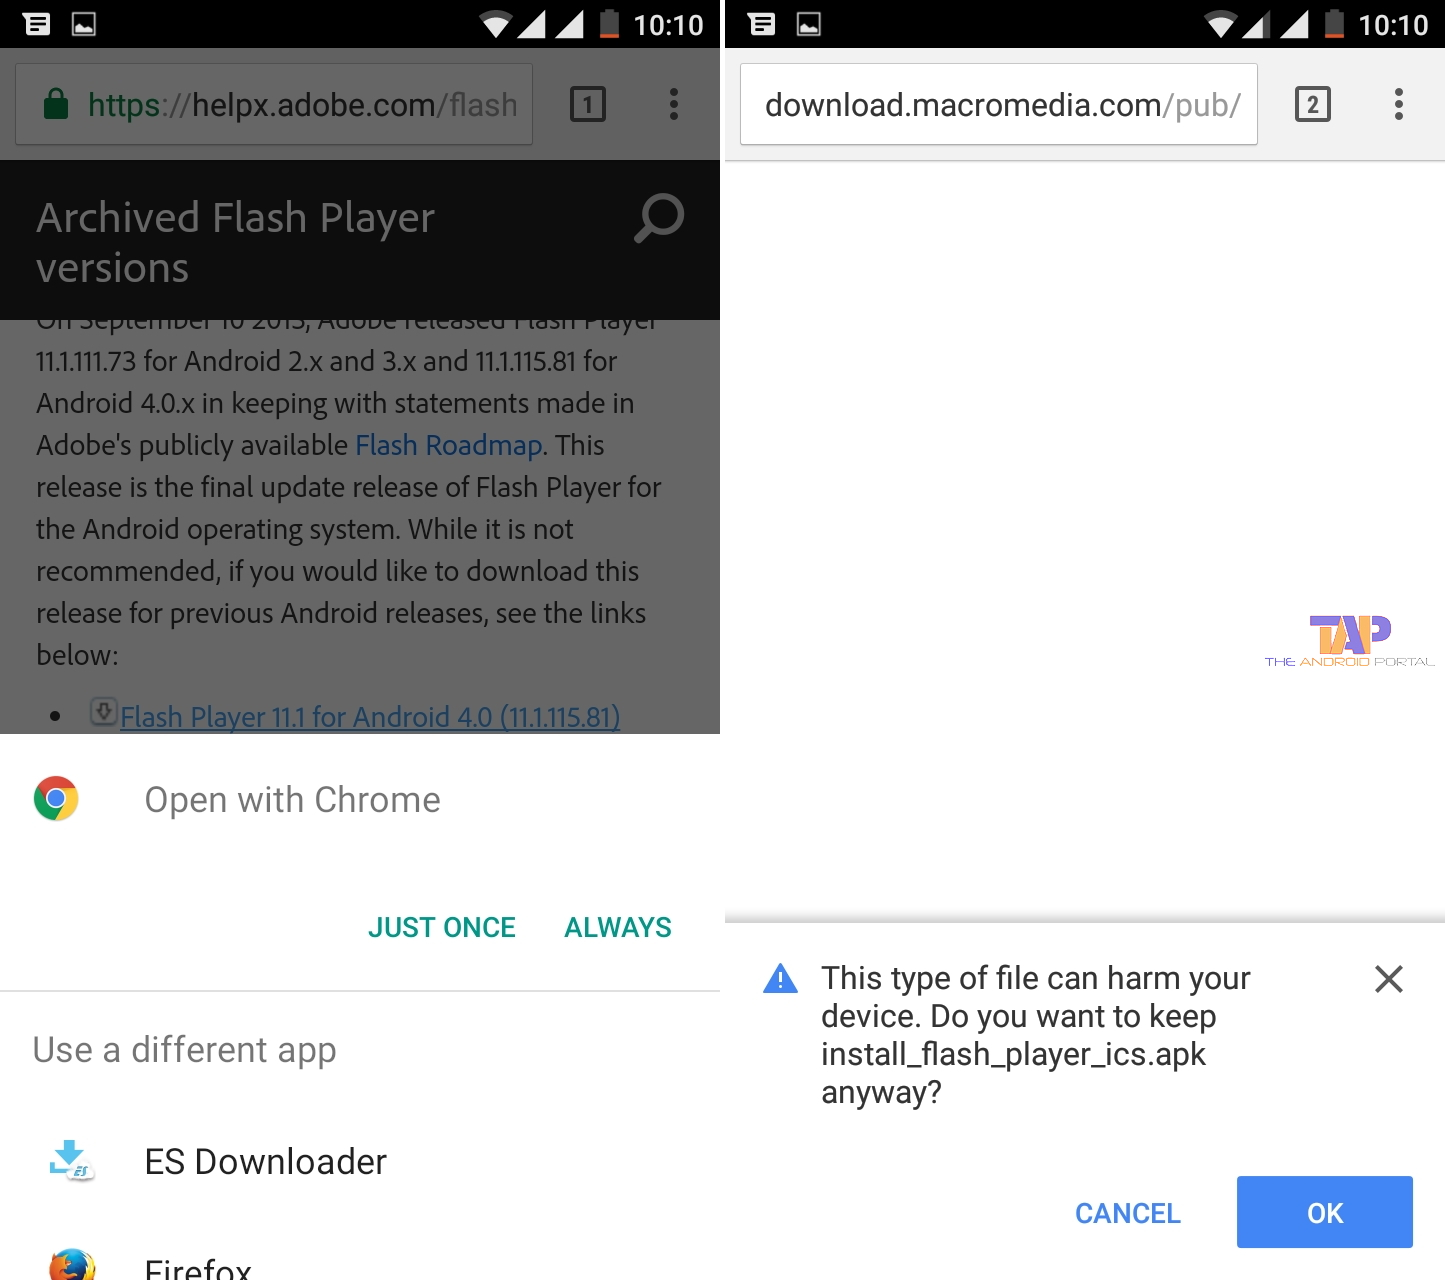 Flash Player for Android 4.0 archives